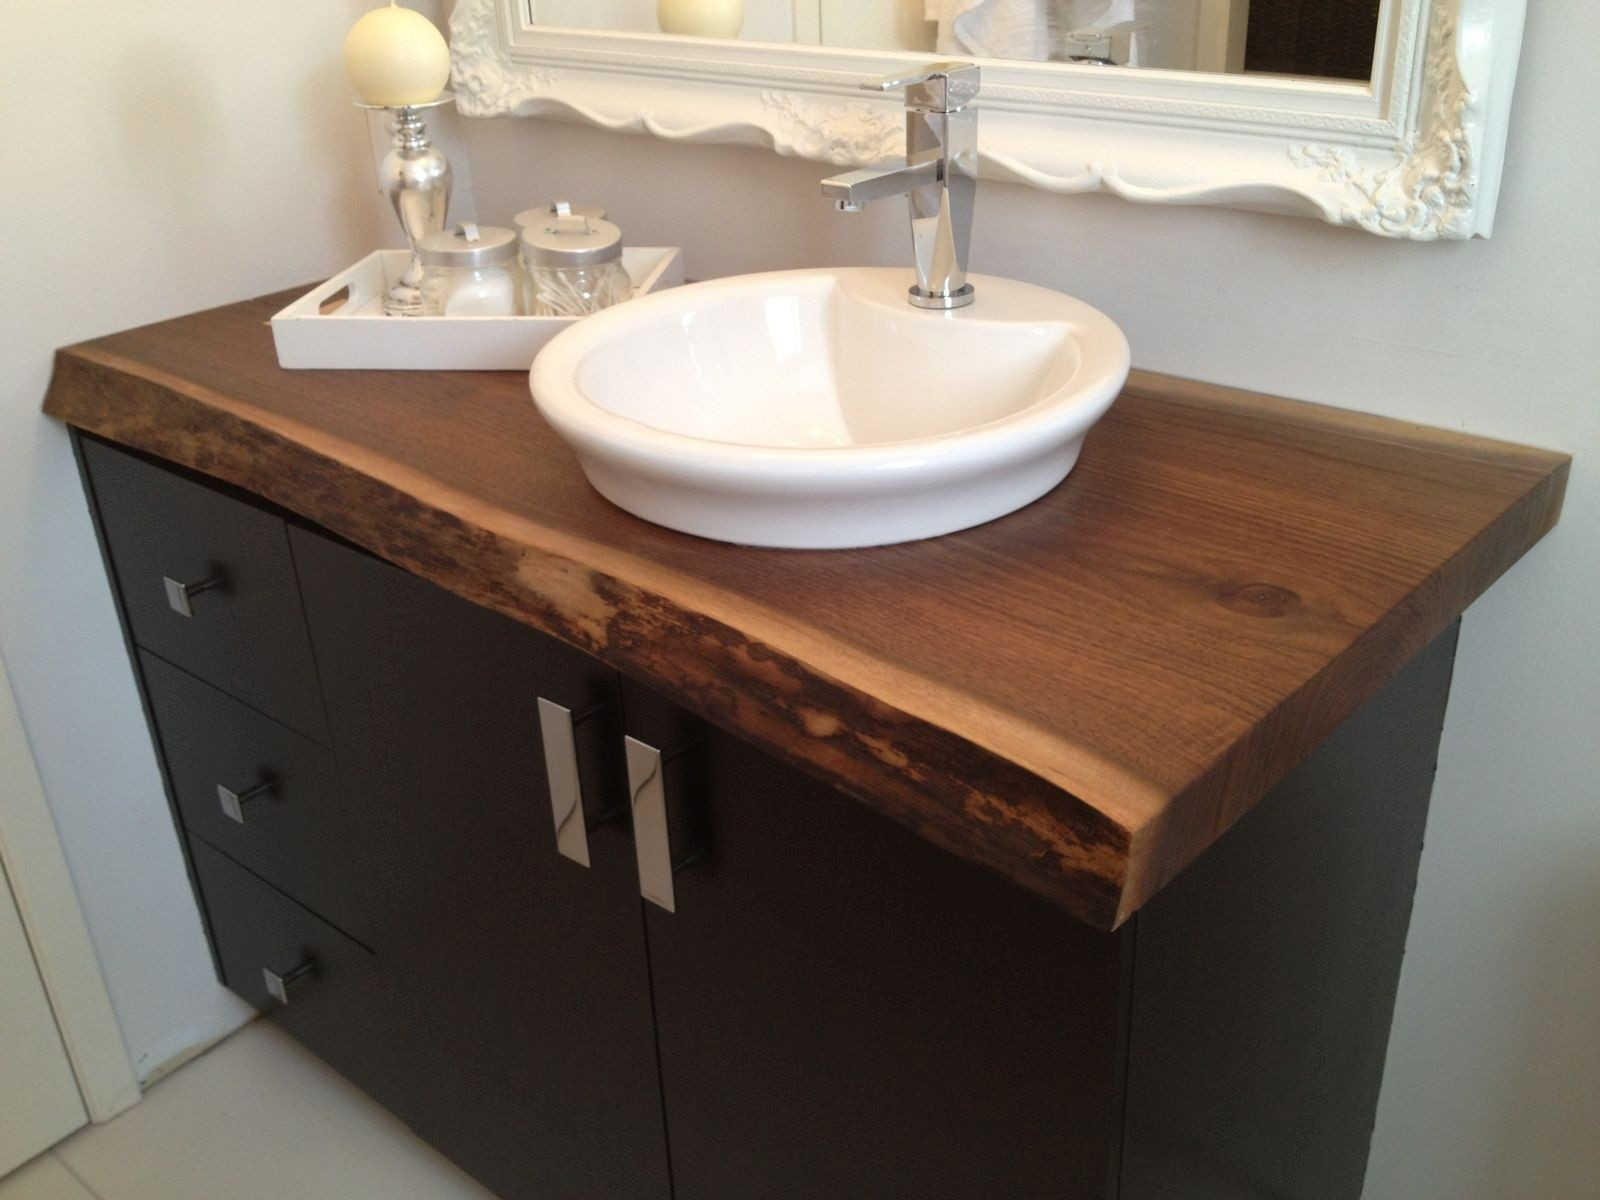 Bathroom Countertops and Sinks Sensational Live Edge Black Walnut Bathroom Countertop This Would Be Perfect Inspiration